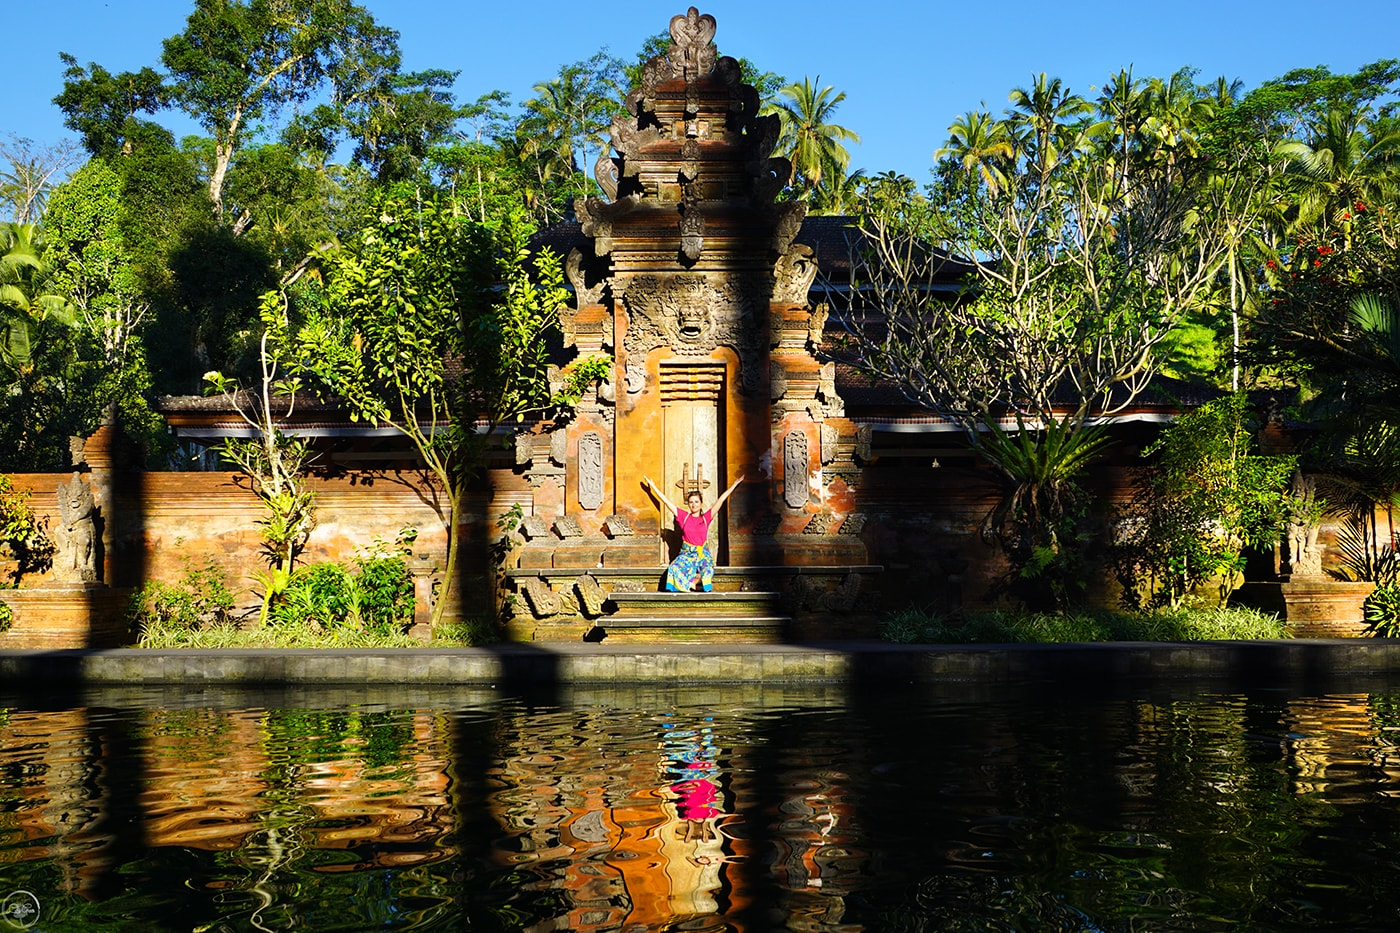 The Koi Pool, Pura Tirta Empul Bali